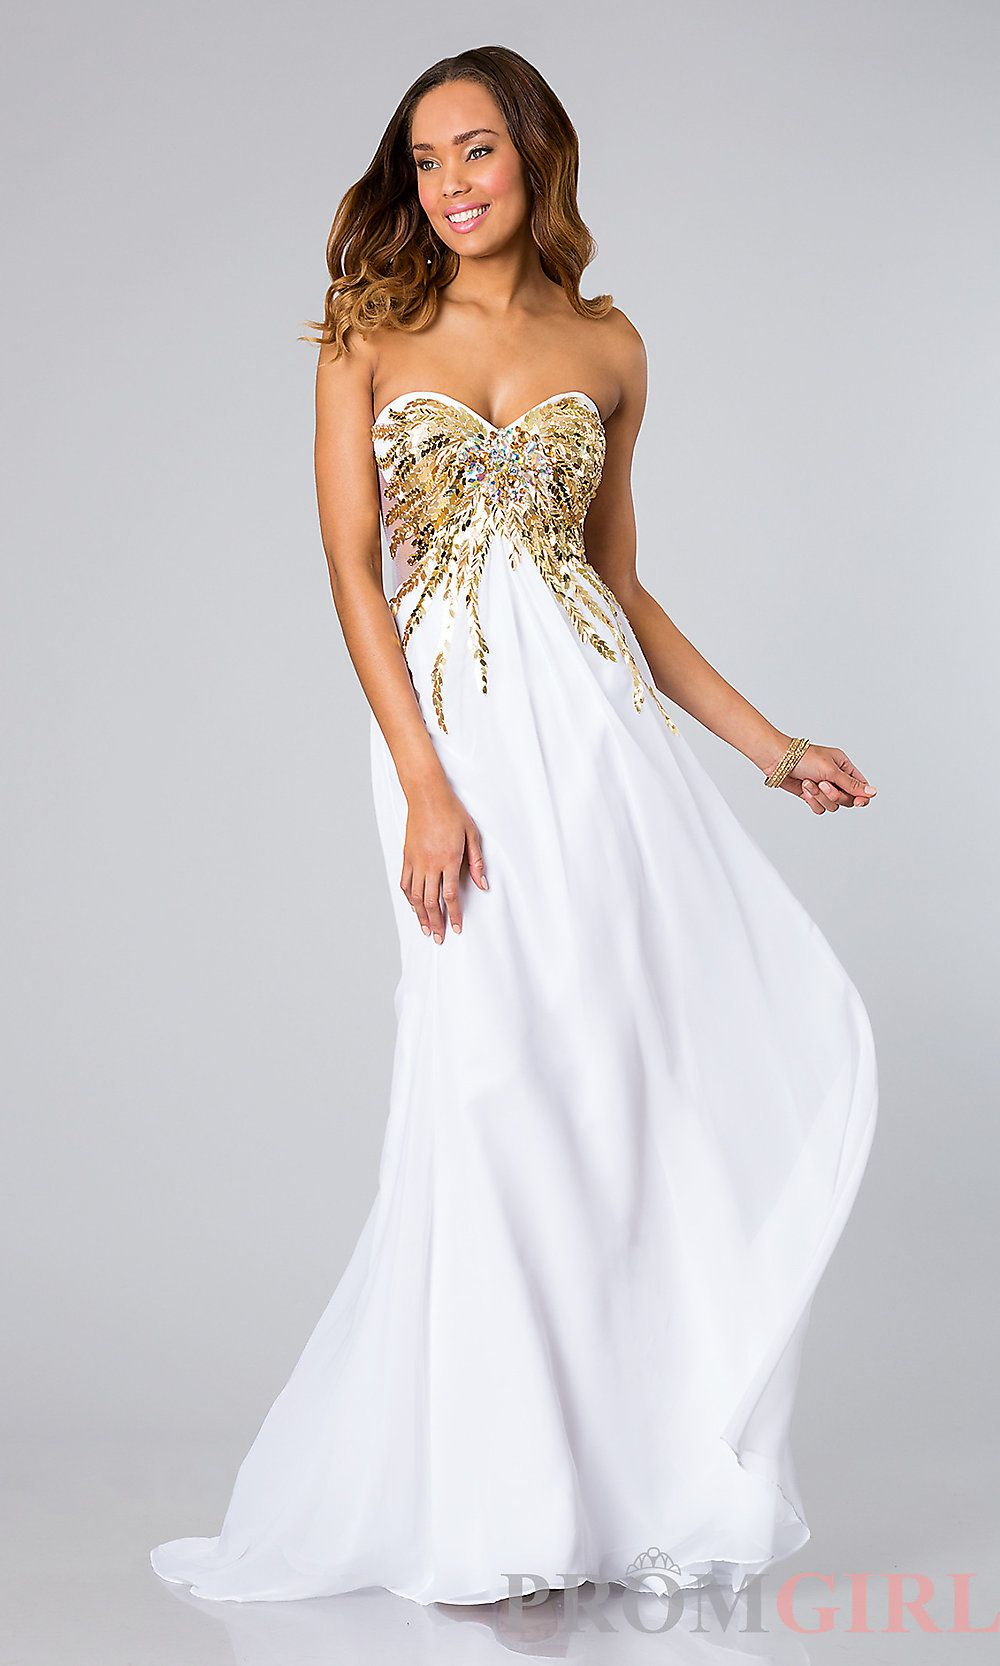 white and gold prom dresses - Google Search | PROM | Pinterest ...